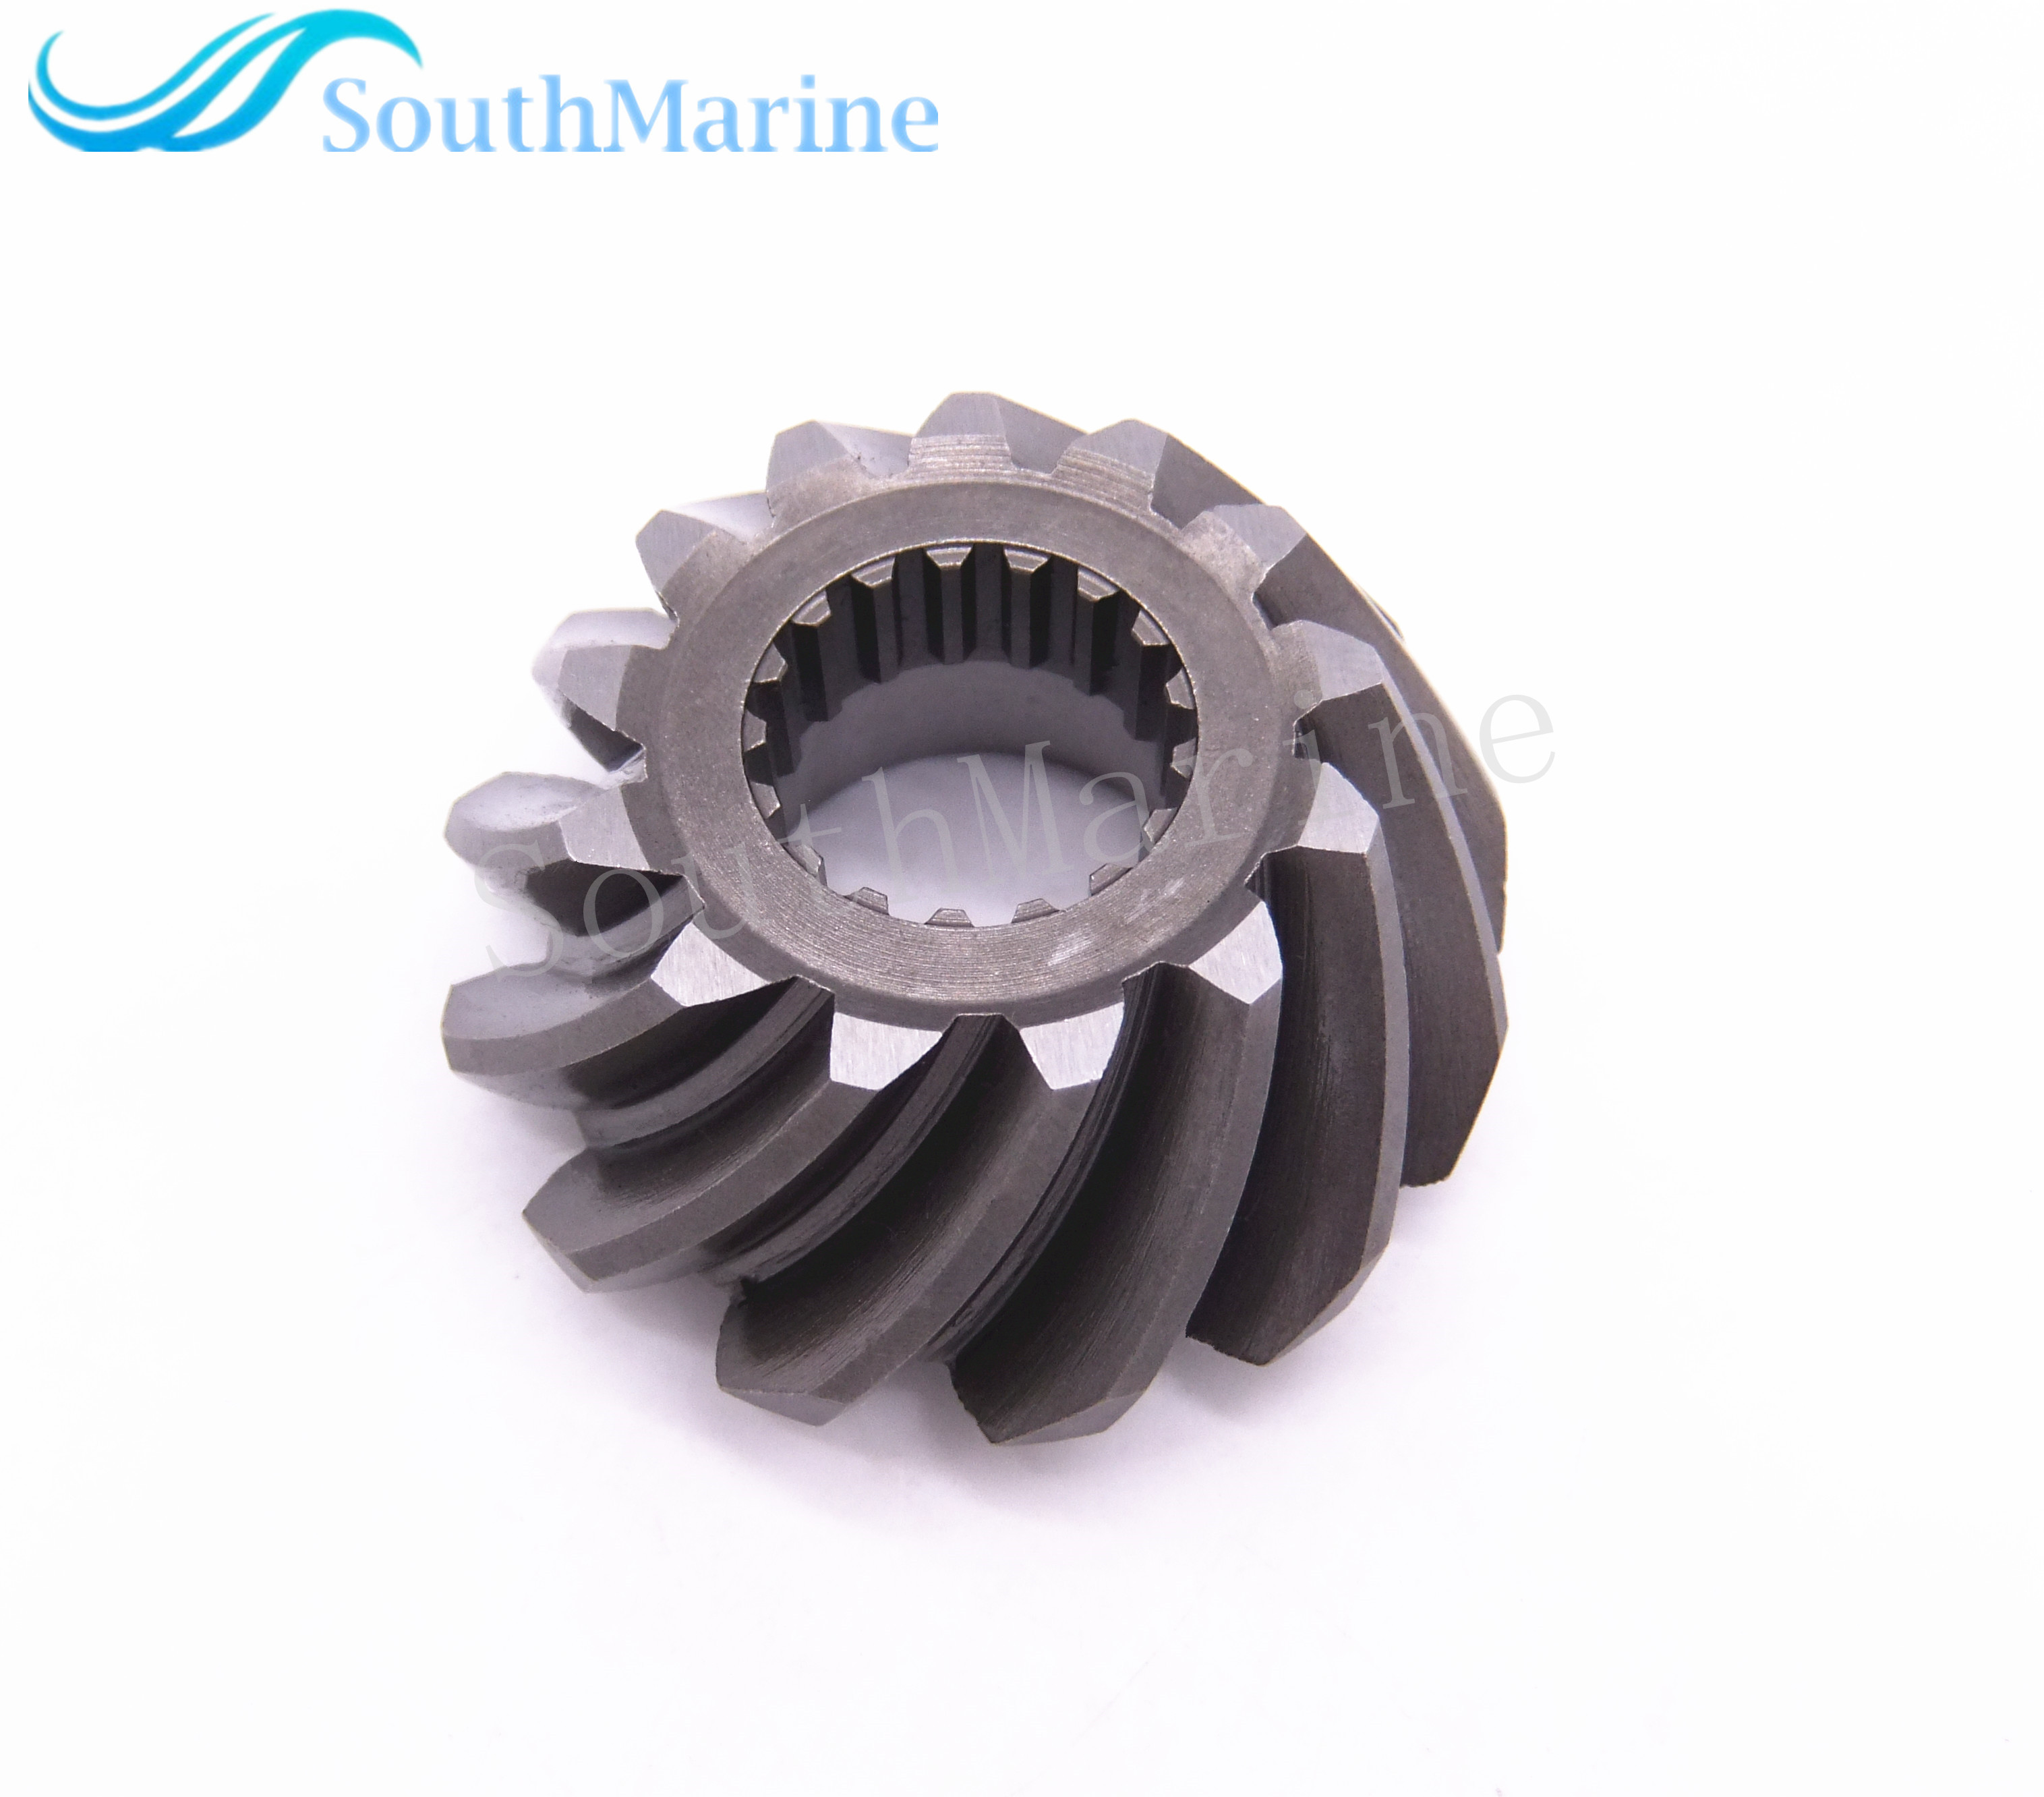 T85-04000605 Pinion Gear For Parsun Hdx Outboard Engine 2-stroke T75 T85 T90 Boat Motor Neither Too Hard Nor Too Soft Atv,rv,boat & Other Vehicle